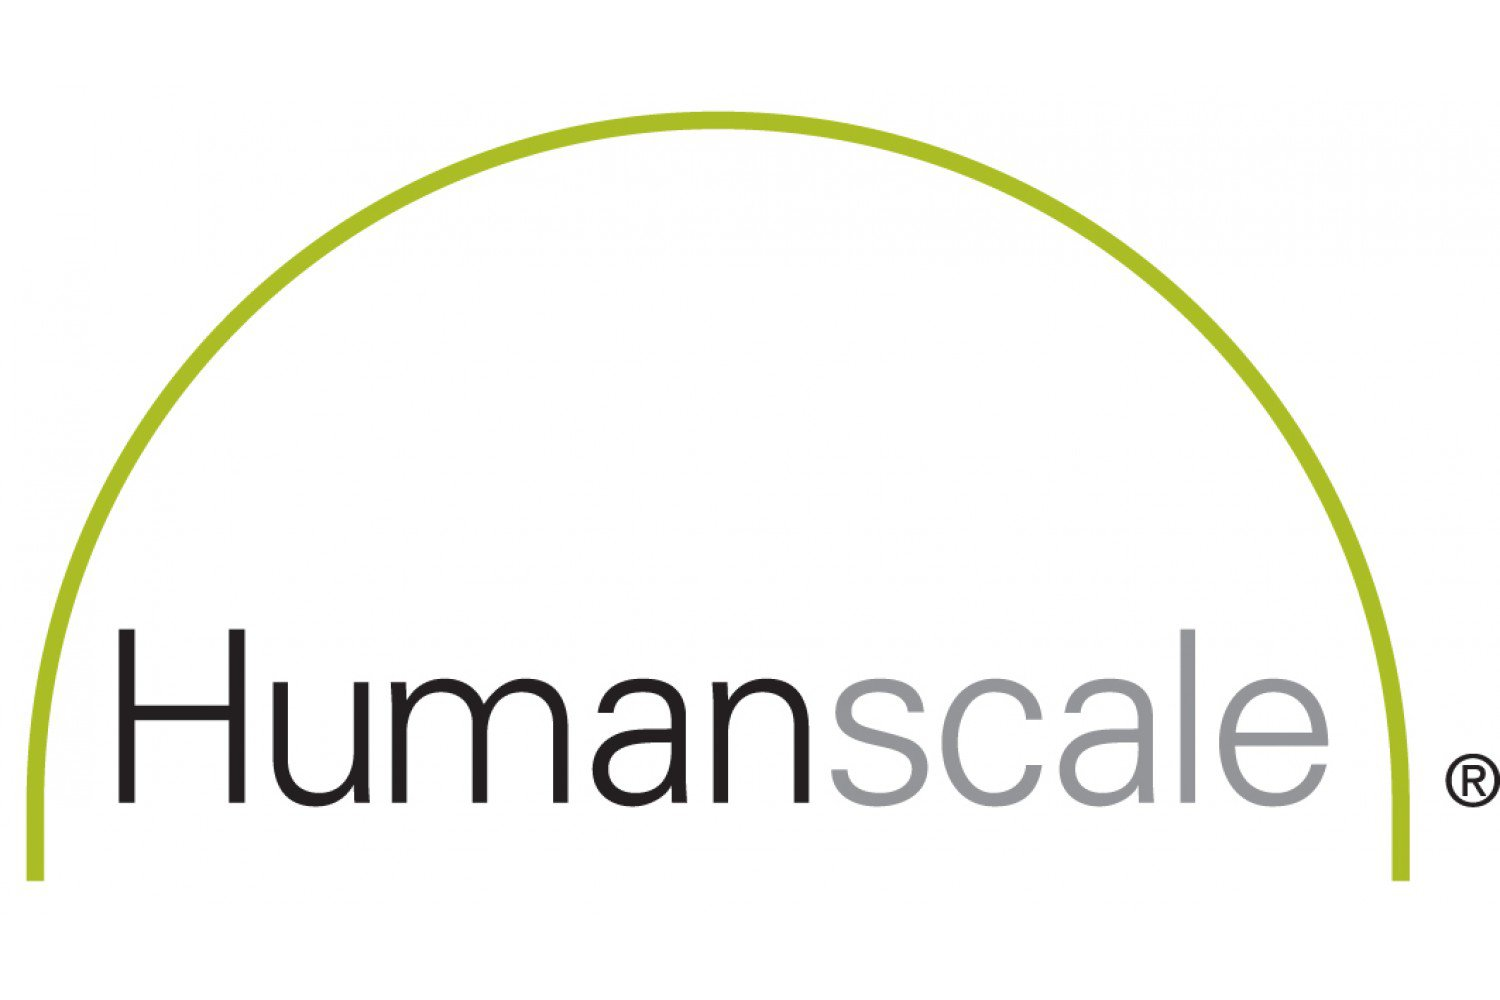 Marque Humanscale